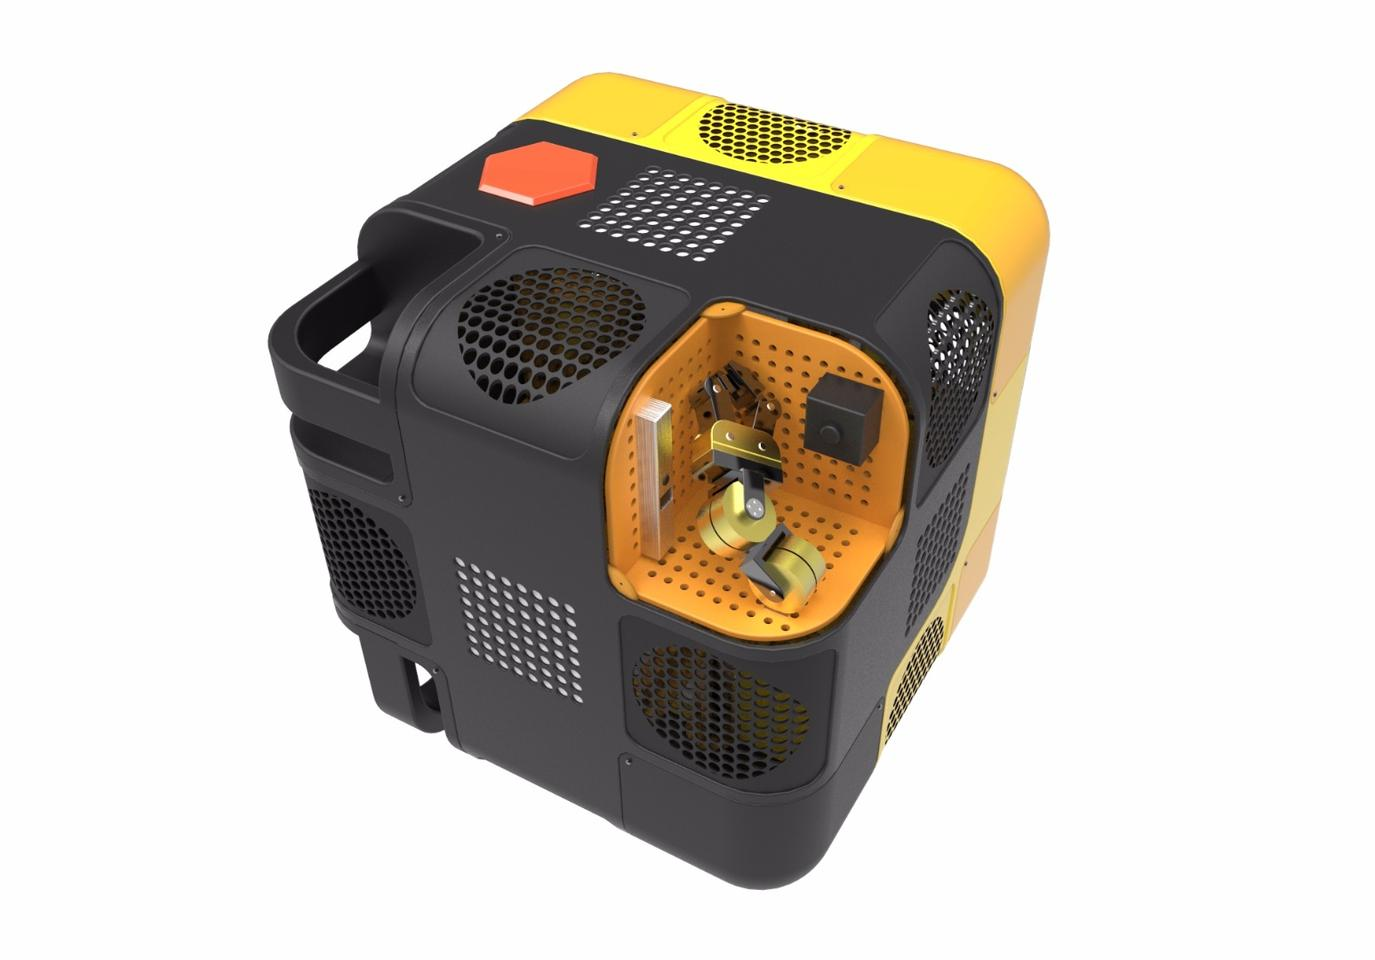 Set to launch next year, Astrobee is a compact, cubed robot measuring one foot (30.5 cm) along each edge